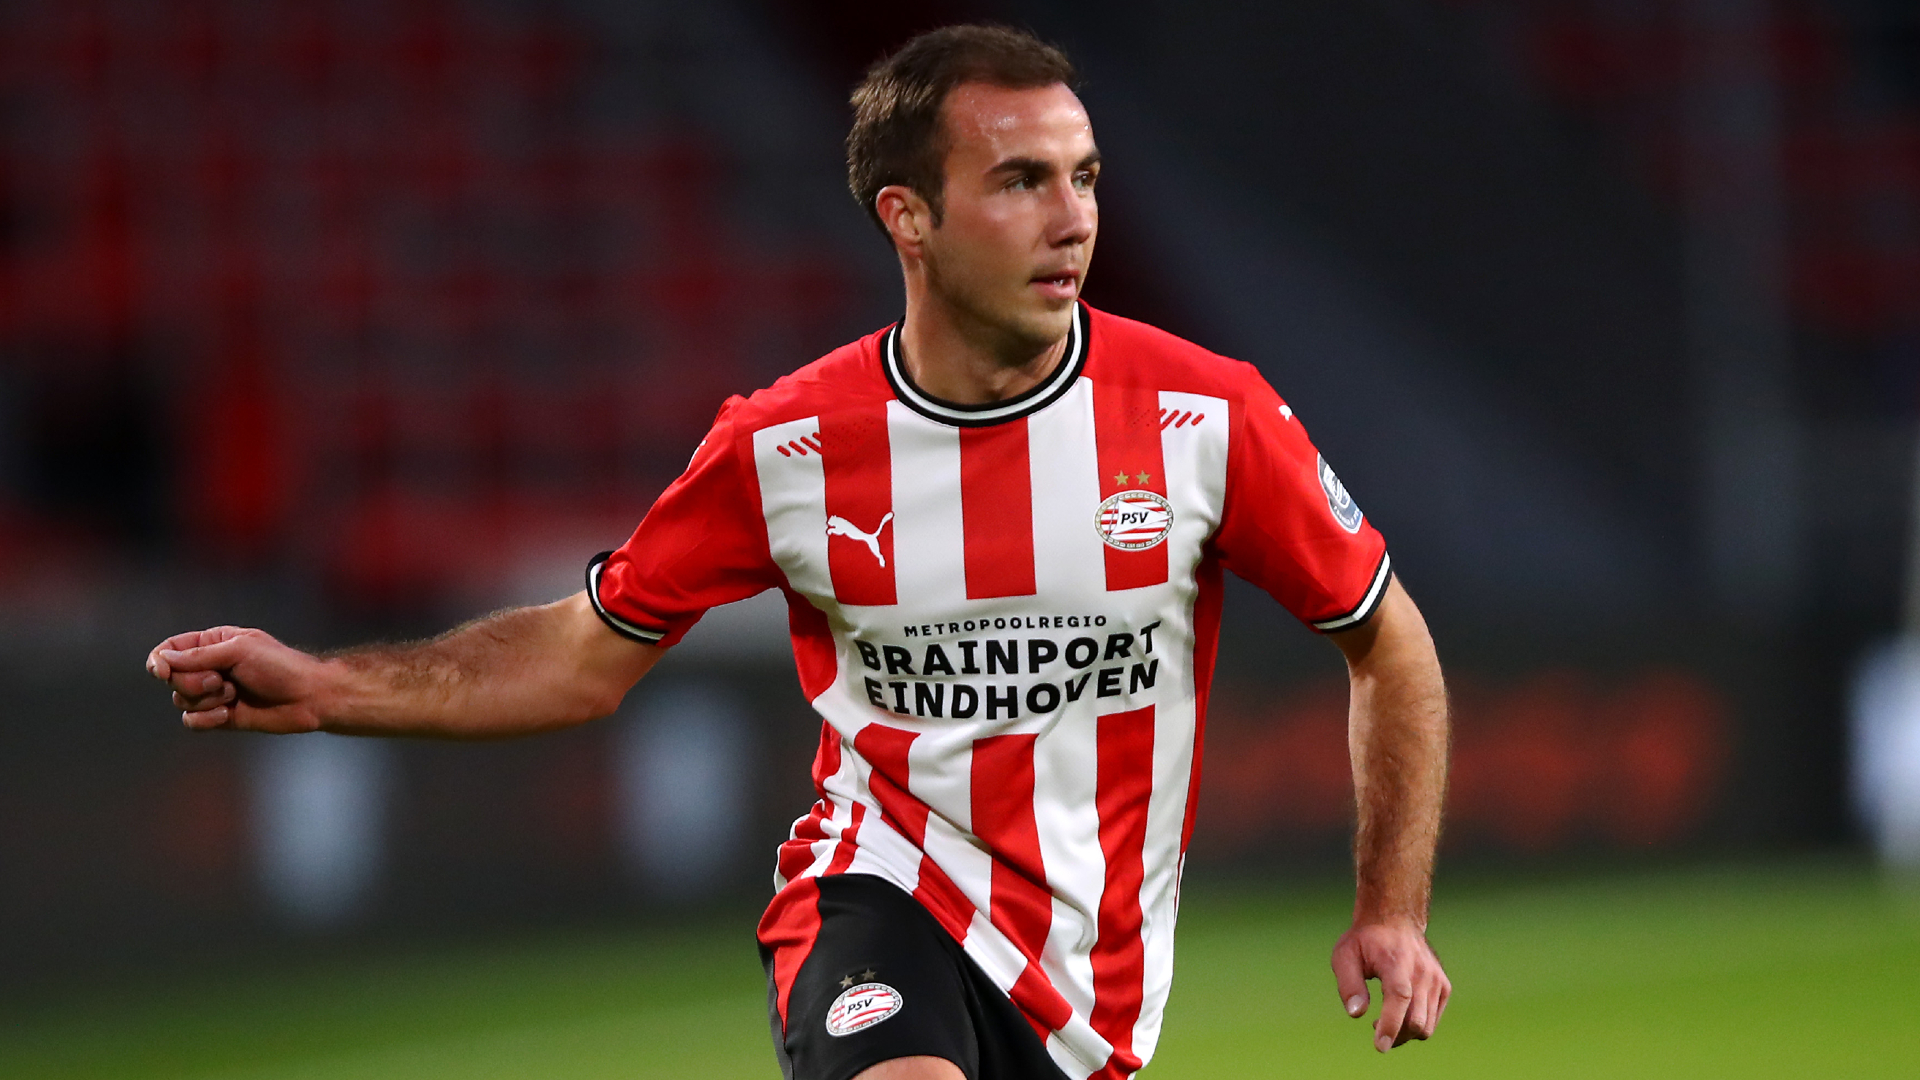 'Maybe I put too much pressure on myself' - Gotze reflects on career journey after PSV move